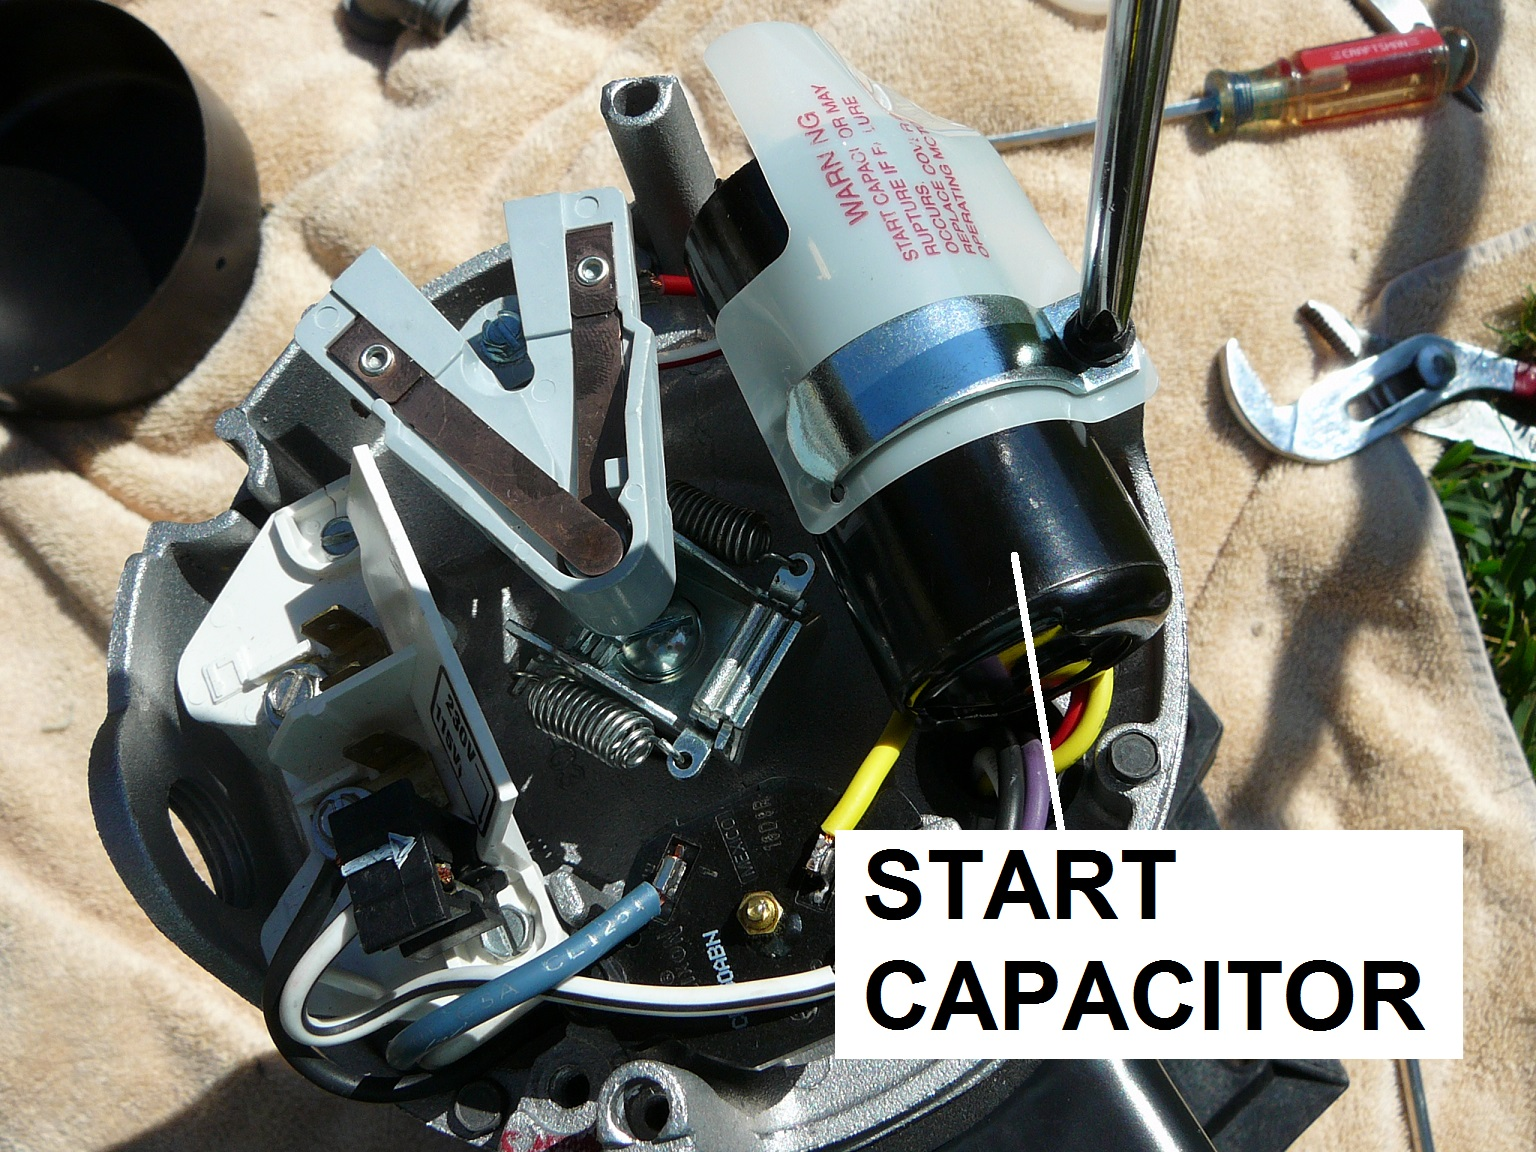 1 p1080871?format=jpg&scale=both&mode=pad&anchor=middlecenter&width=300&height=250 how to select the right capacitor for your pool pump motor pool pump capacitor wiring diagram at crackthecode.co